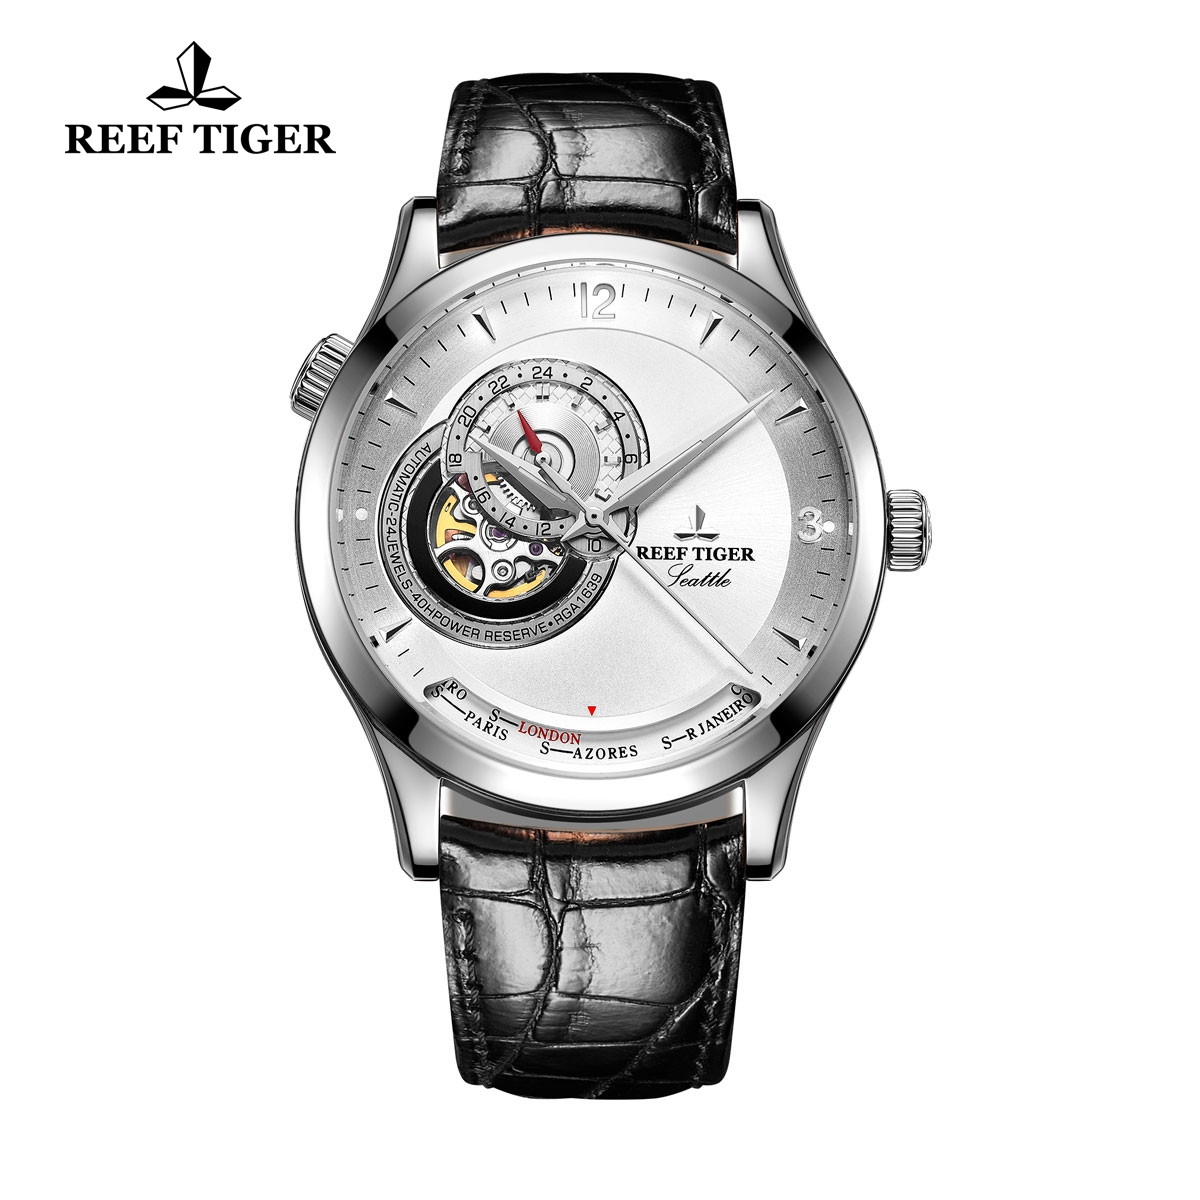 Reef Tiger Seattle Sailing White Dial Steel Watch With Tourbillon Automatic Watch RGA1693-YWB